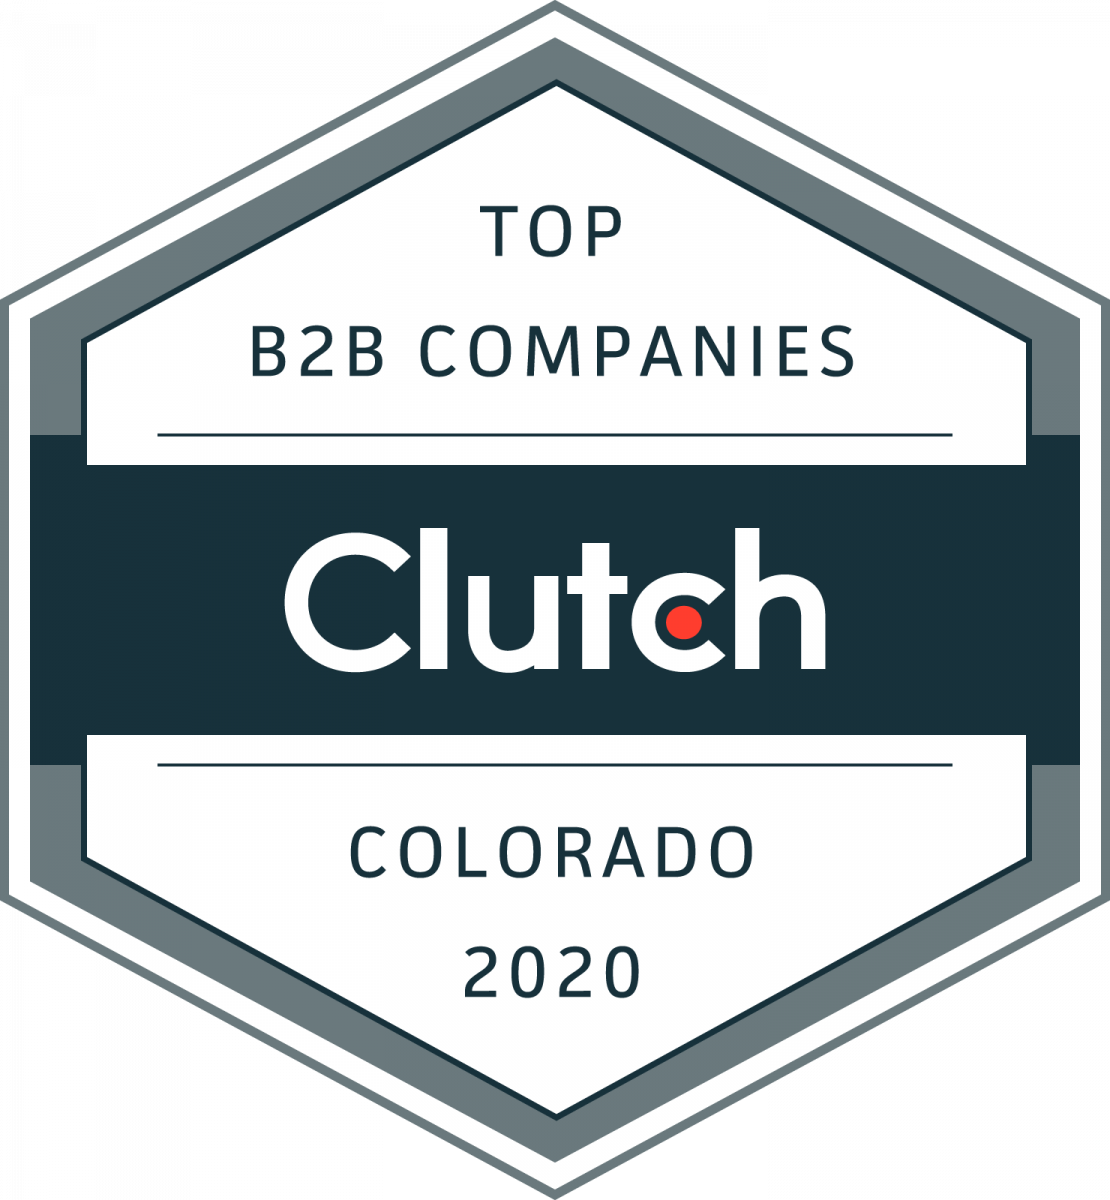 Top B2B Companies Colorado